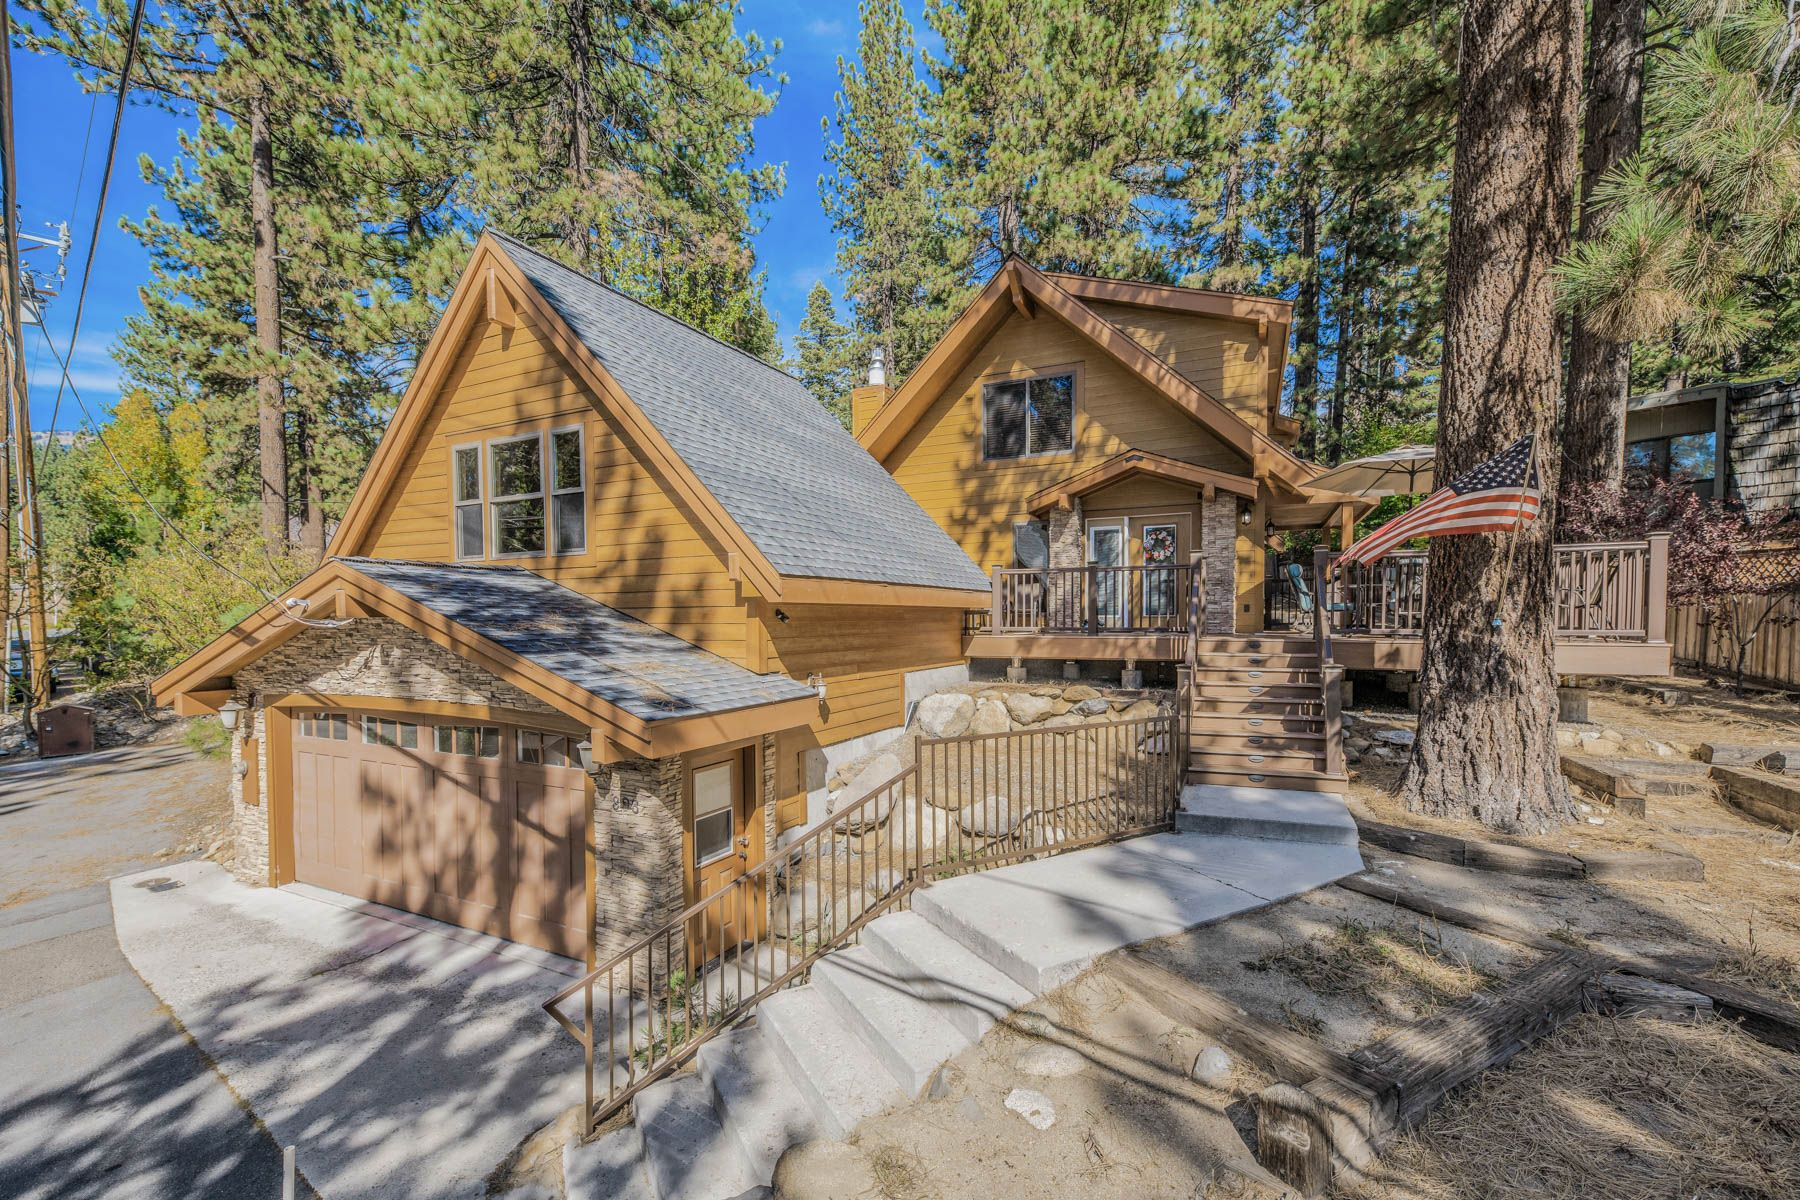 Single Family Homes for Active at Great Family Home or Investment 898 College Dr Incline Village, Nevada 89451 United States